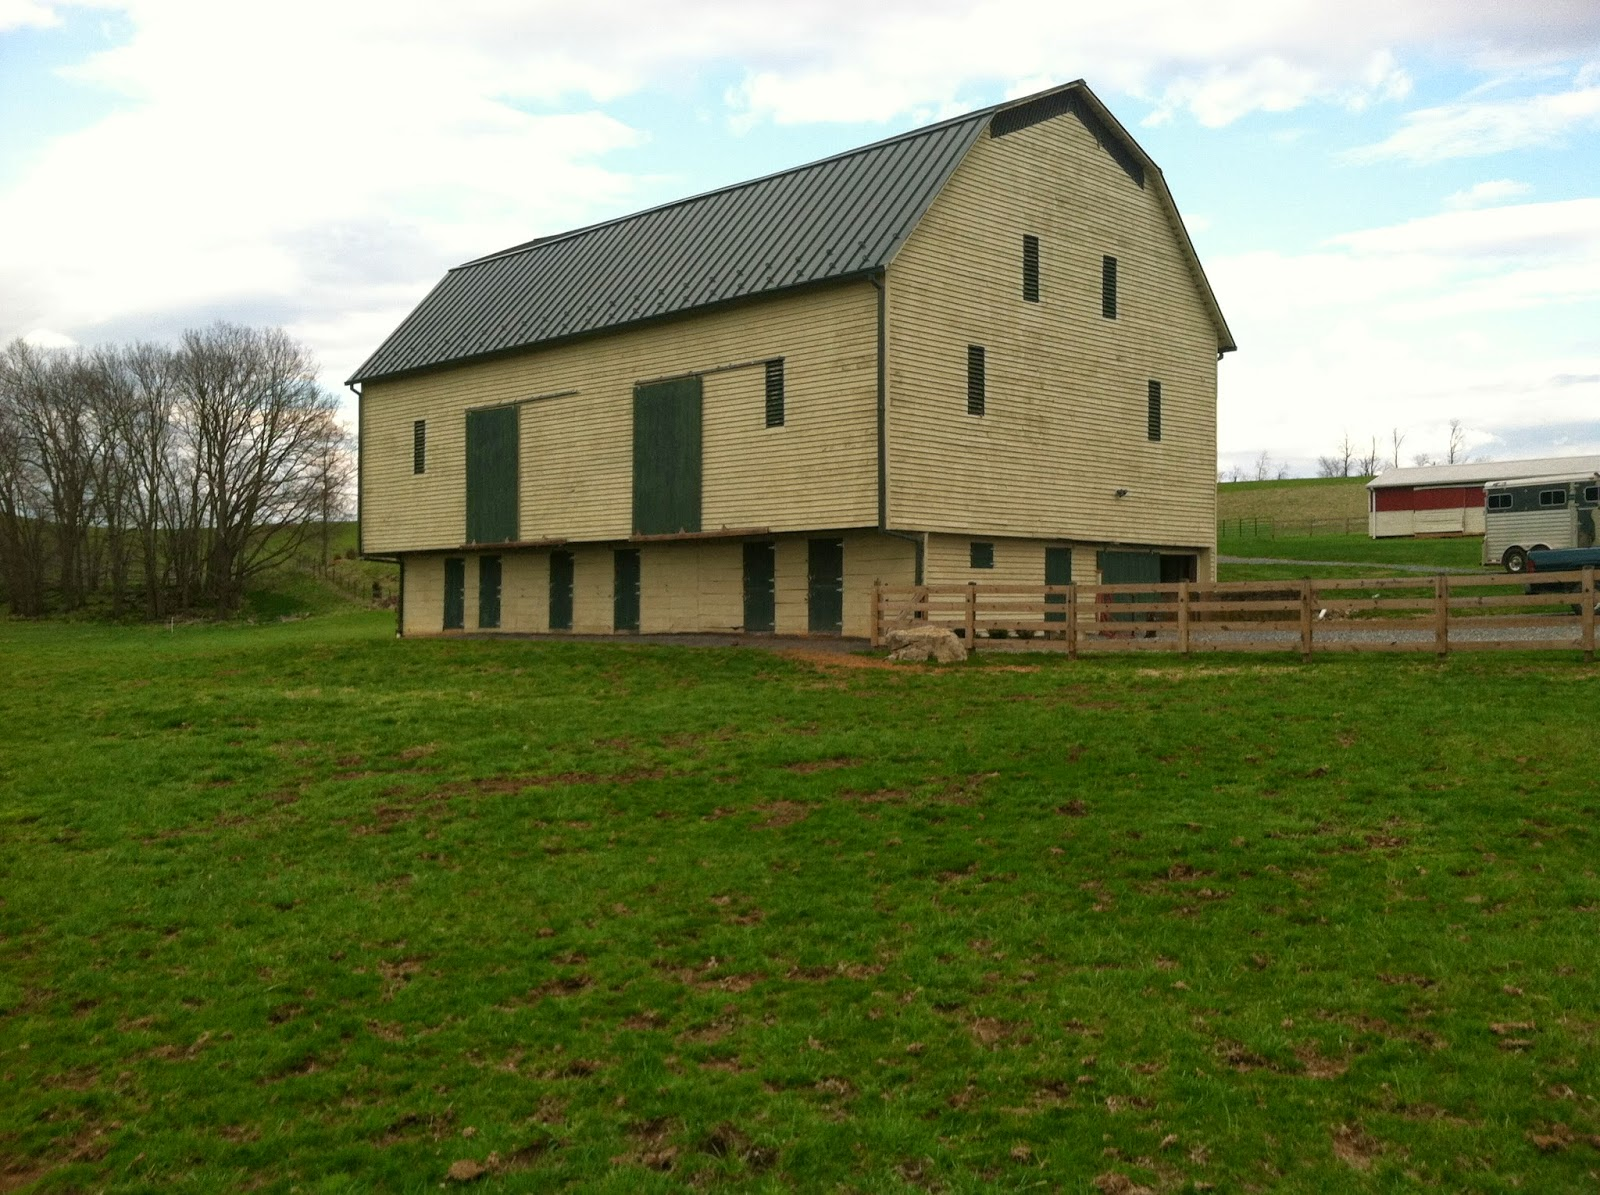 Horse Country Chic: Saving Old Bank Barns